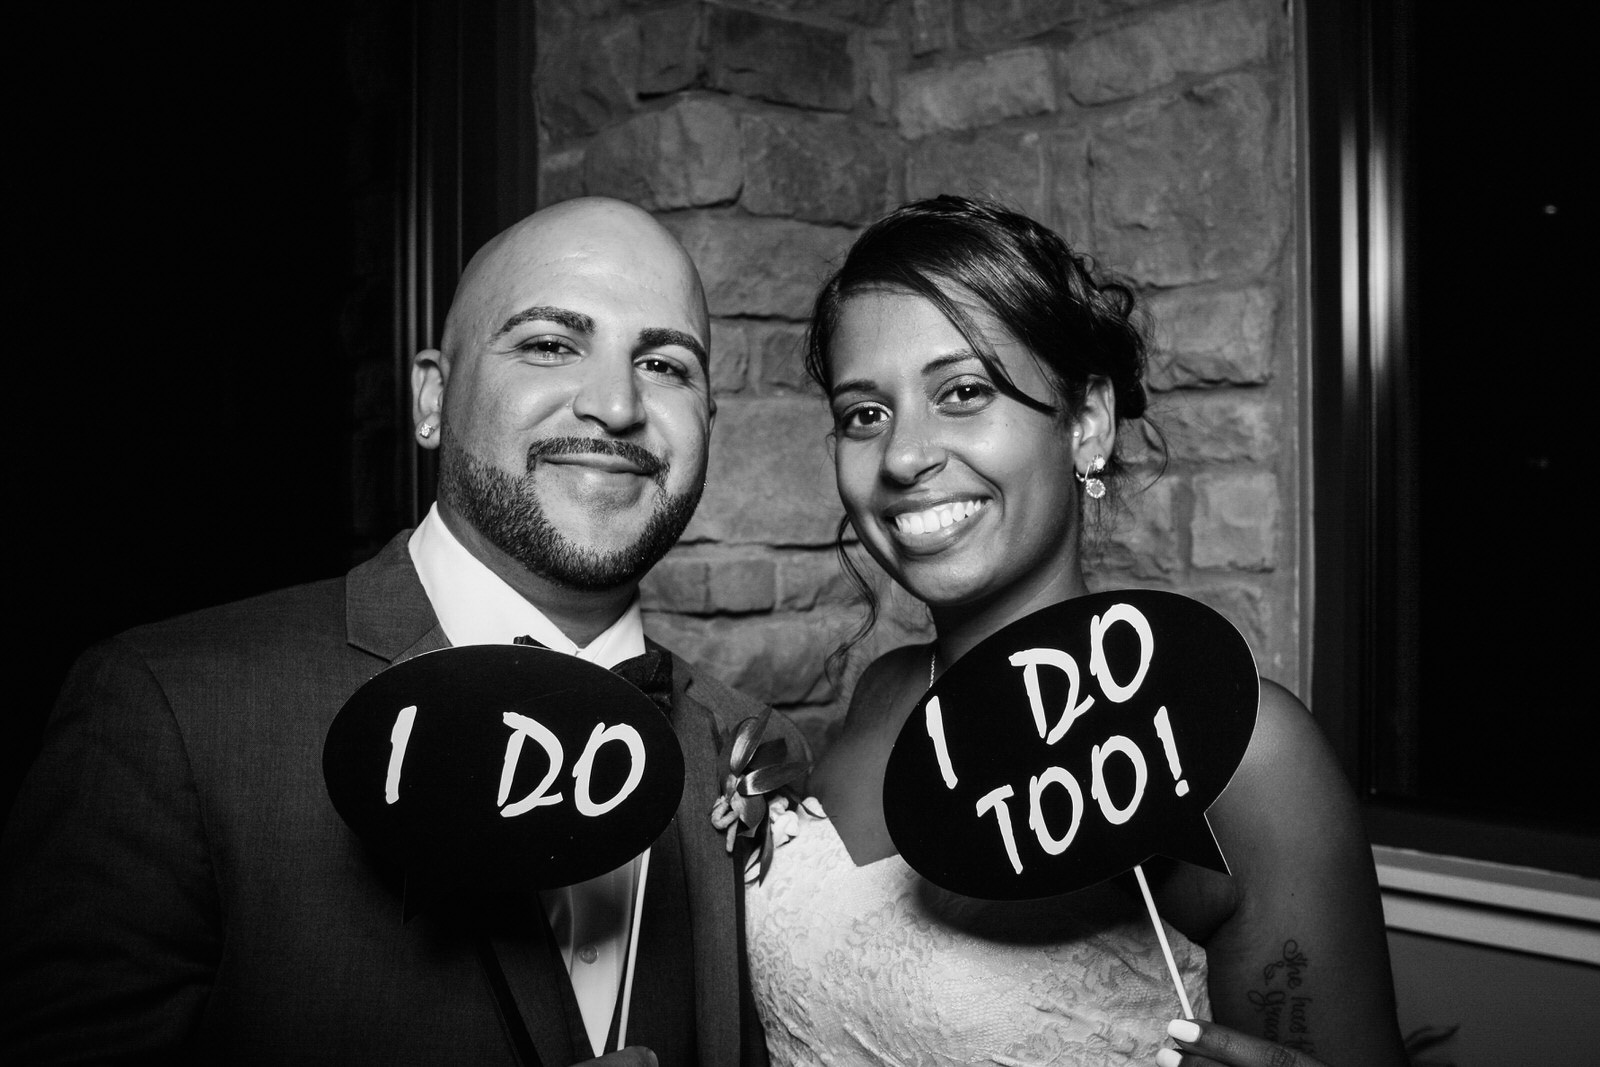 Vanessa-Jonathan-Wedding-Photo-Booth-84.jpg